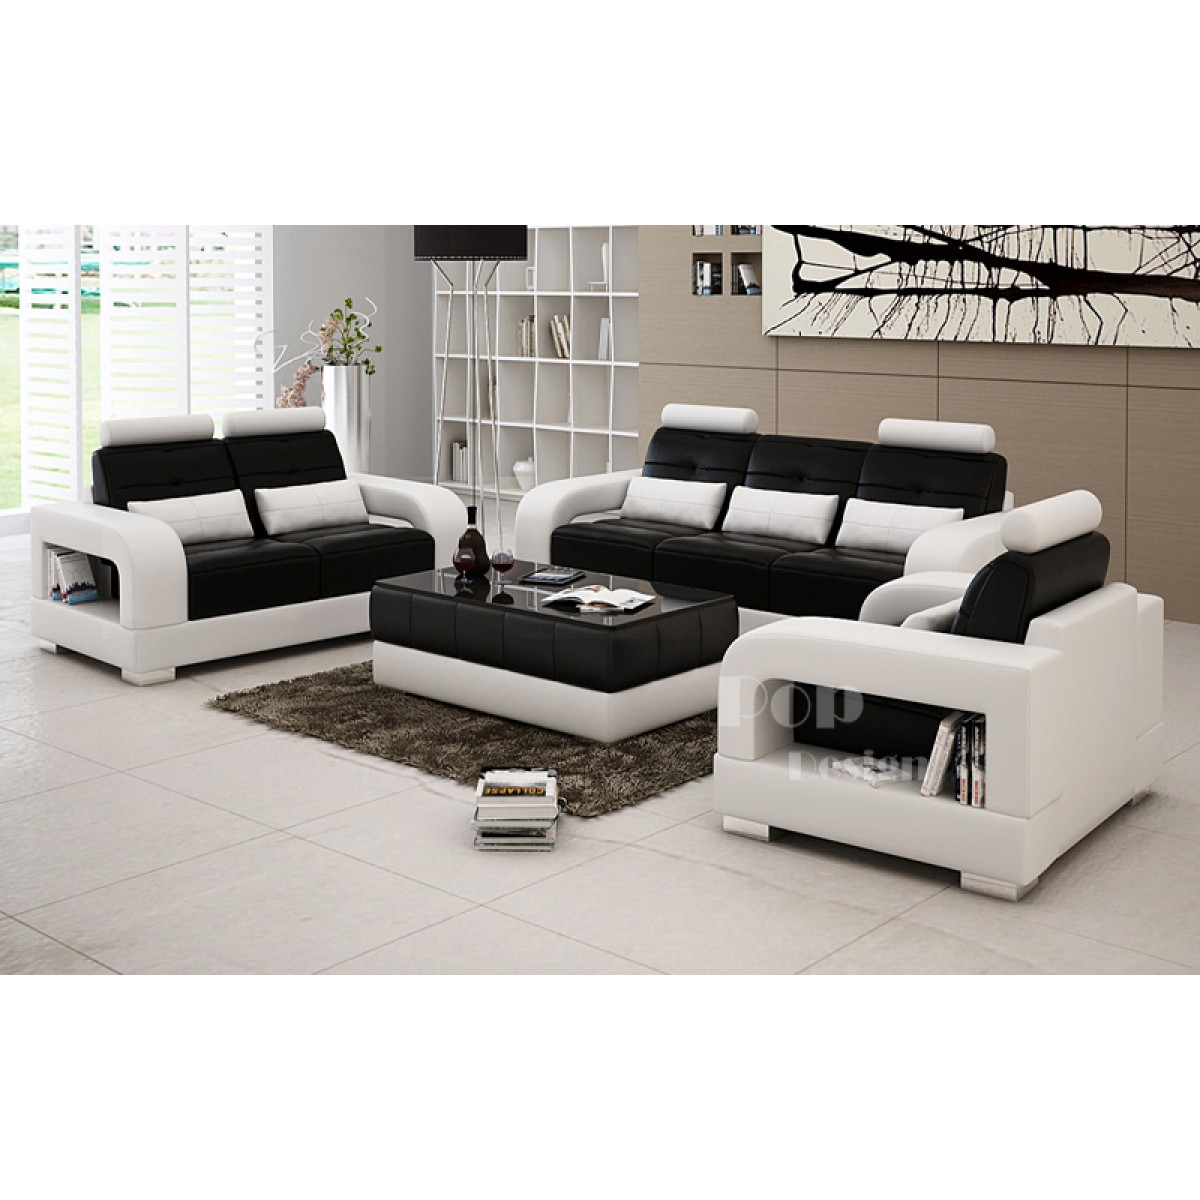 salon set canap s personnalisable en cuir design salerno